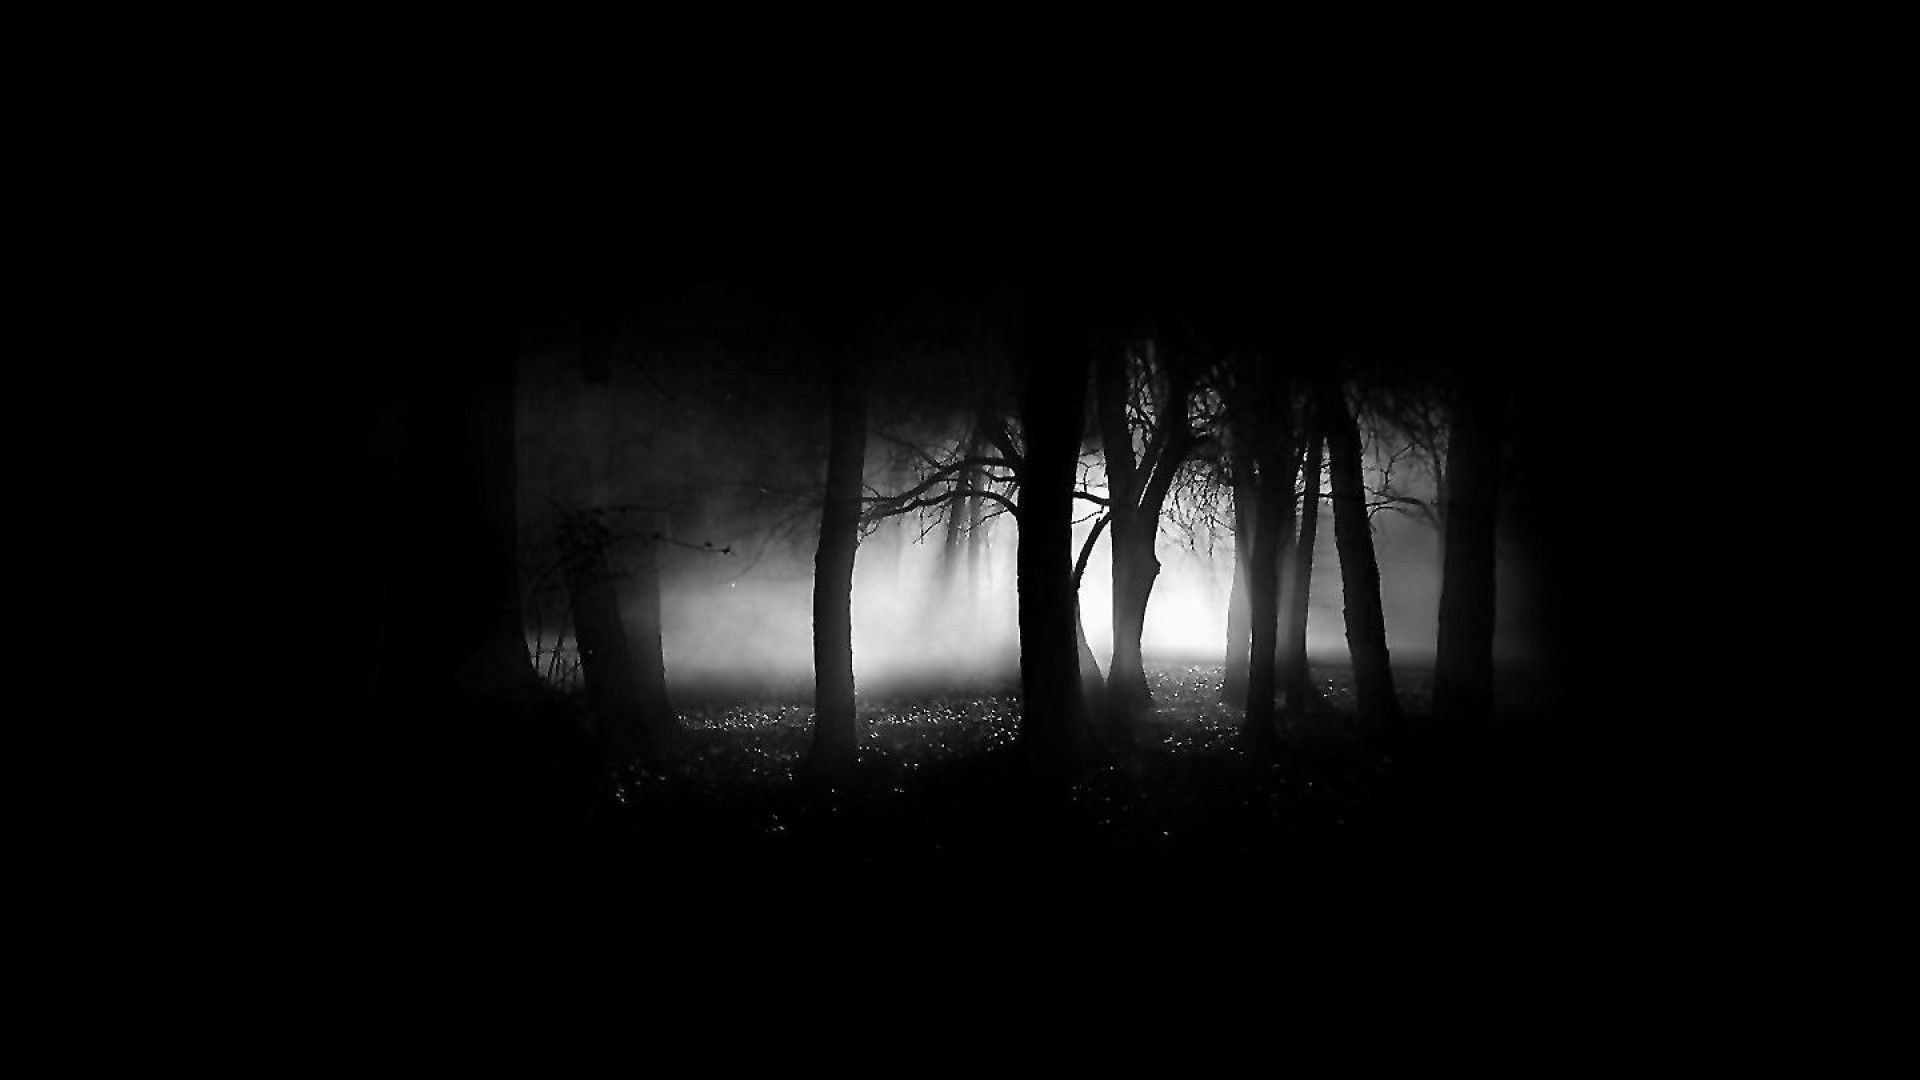 Dark Desktop Background Wallpapers And Hd Backgrounds Free Download On Picgaga